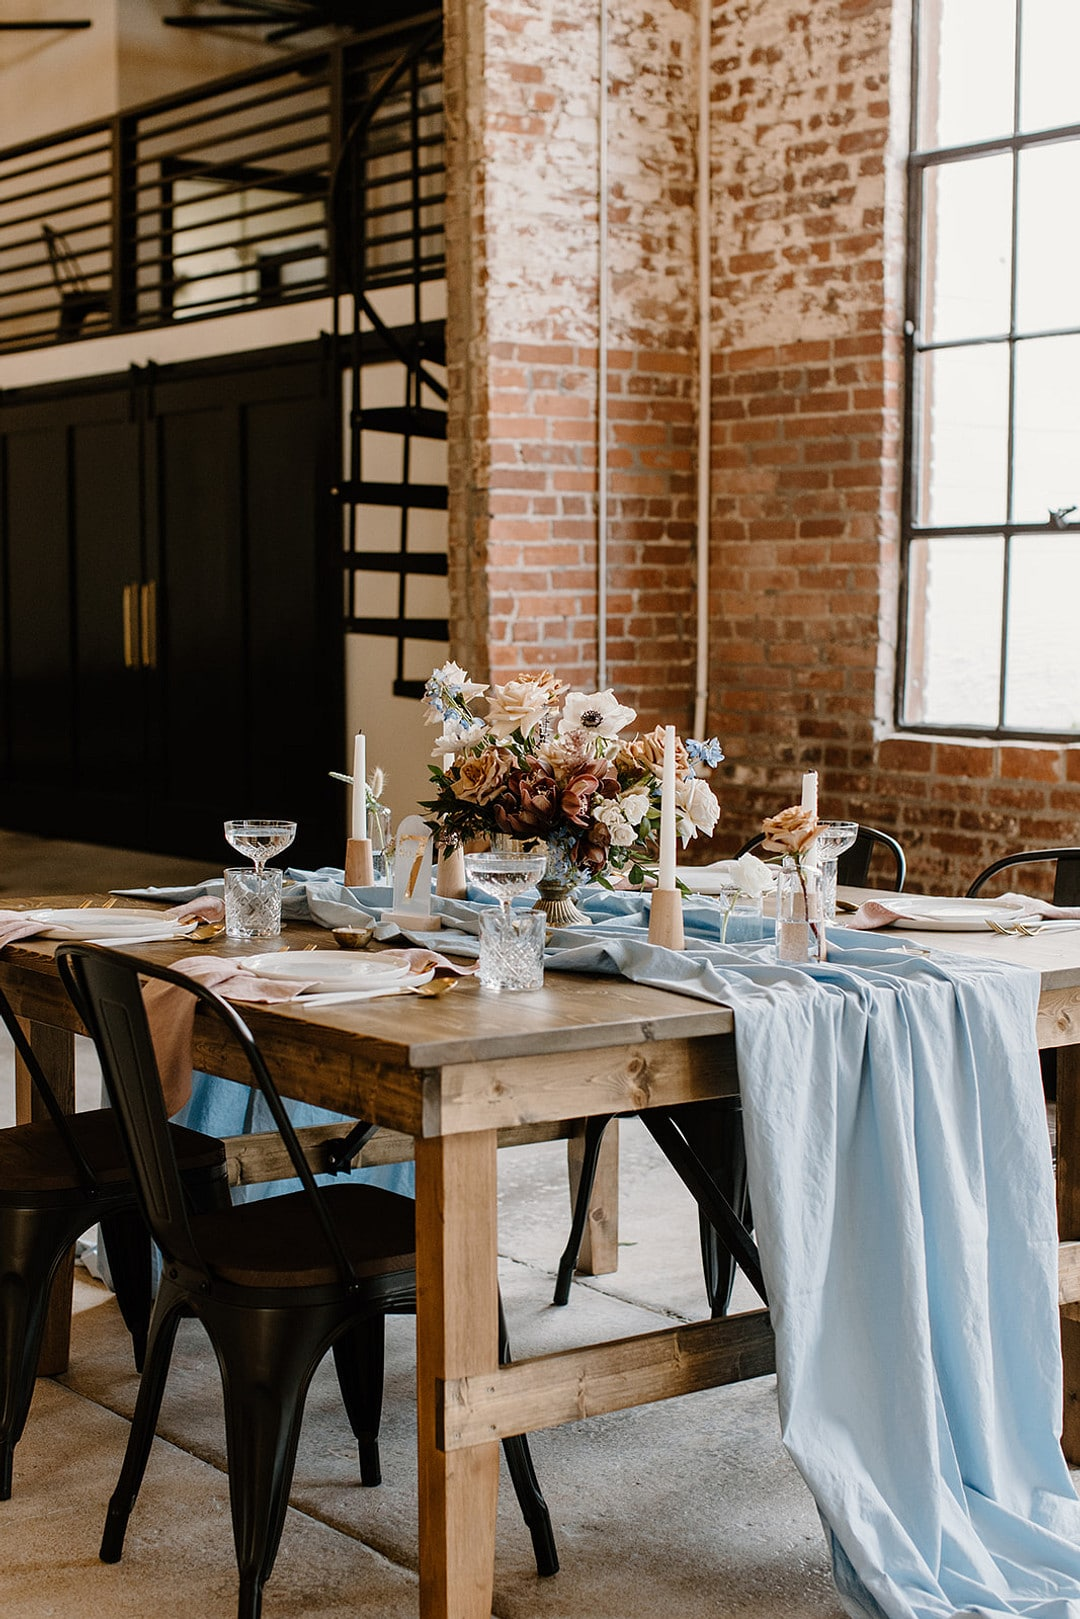 the reception table set up for the urban loft wedding inspiration with blues and pinks and other natural tones.